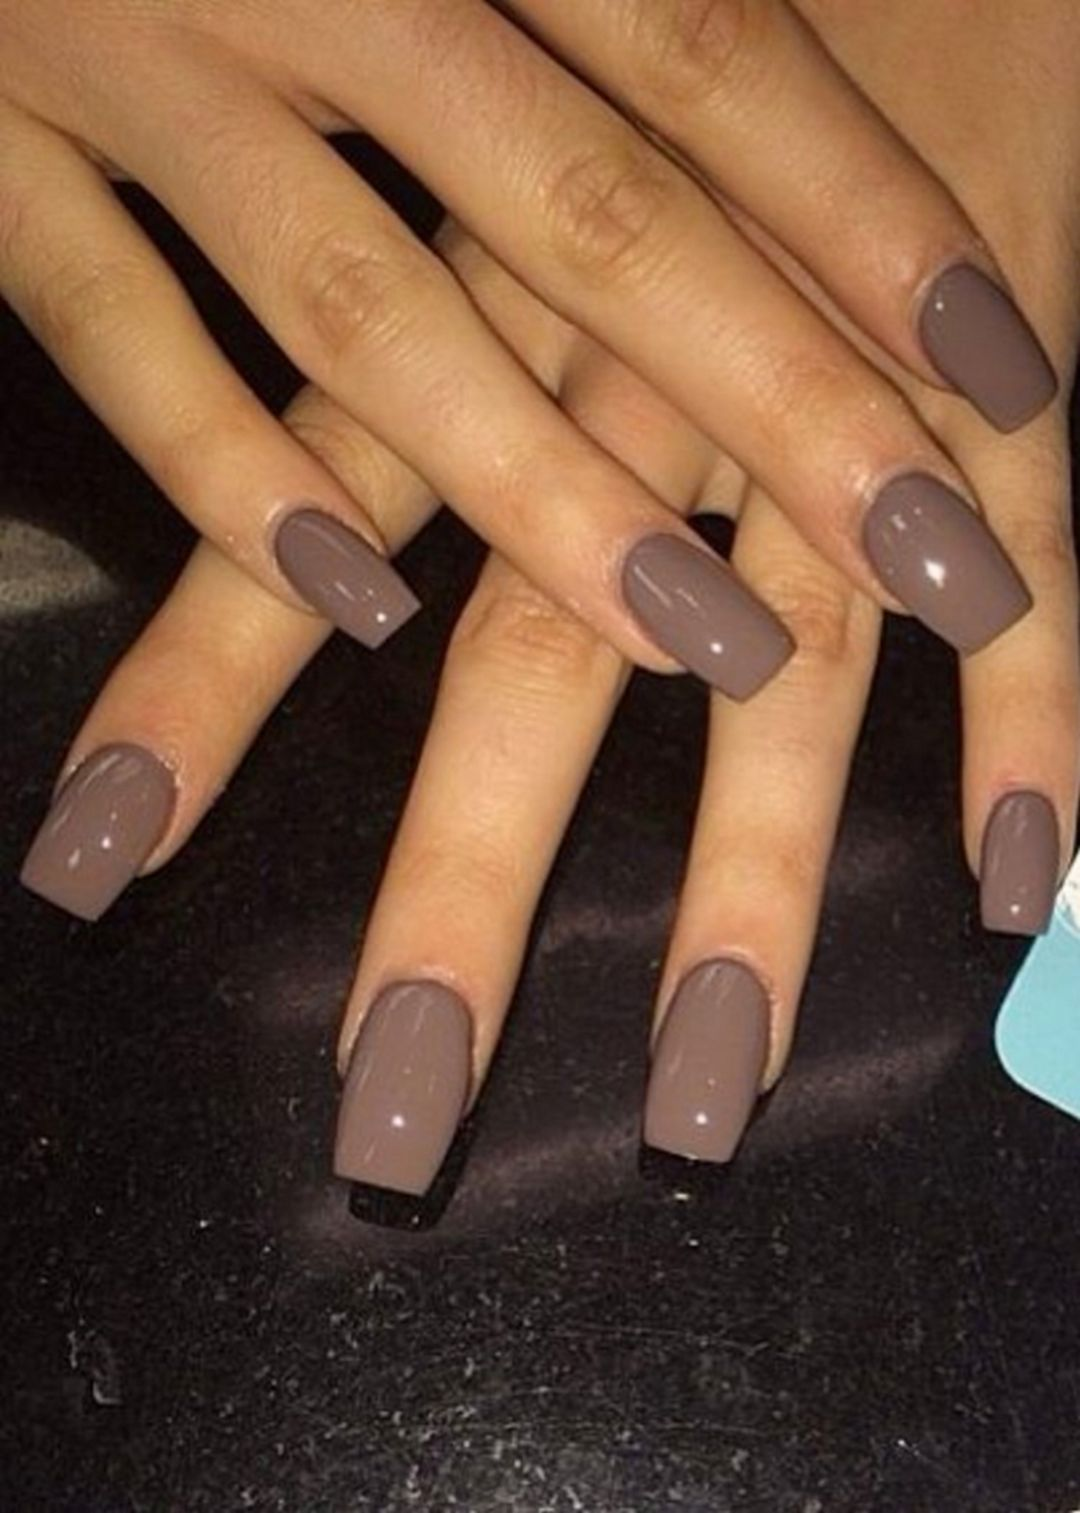 Pin by Beautiful Nail Art on Manicures | Fall nail colors, Autumn ...